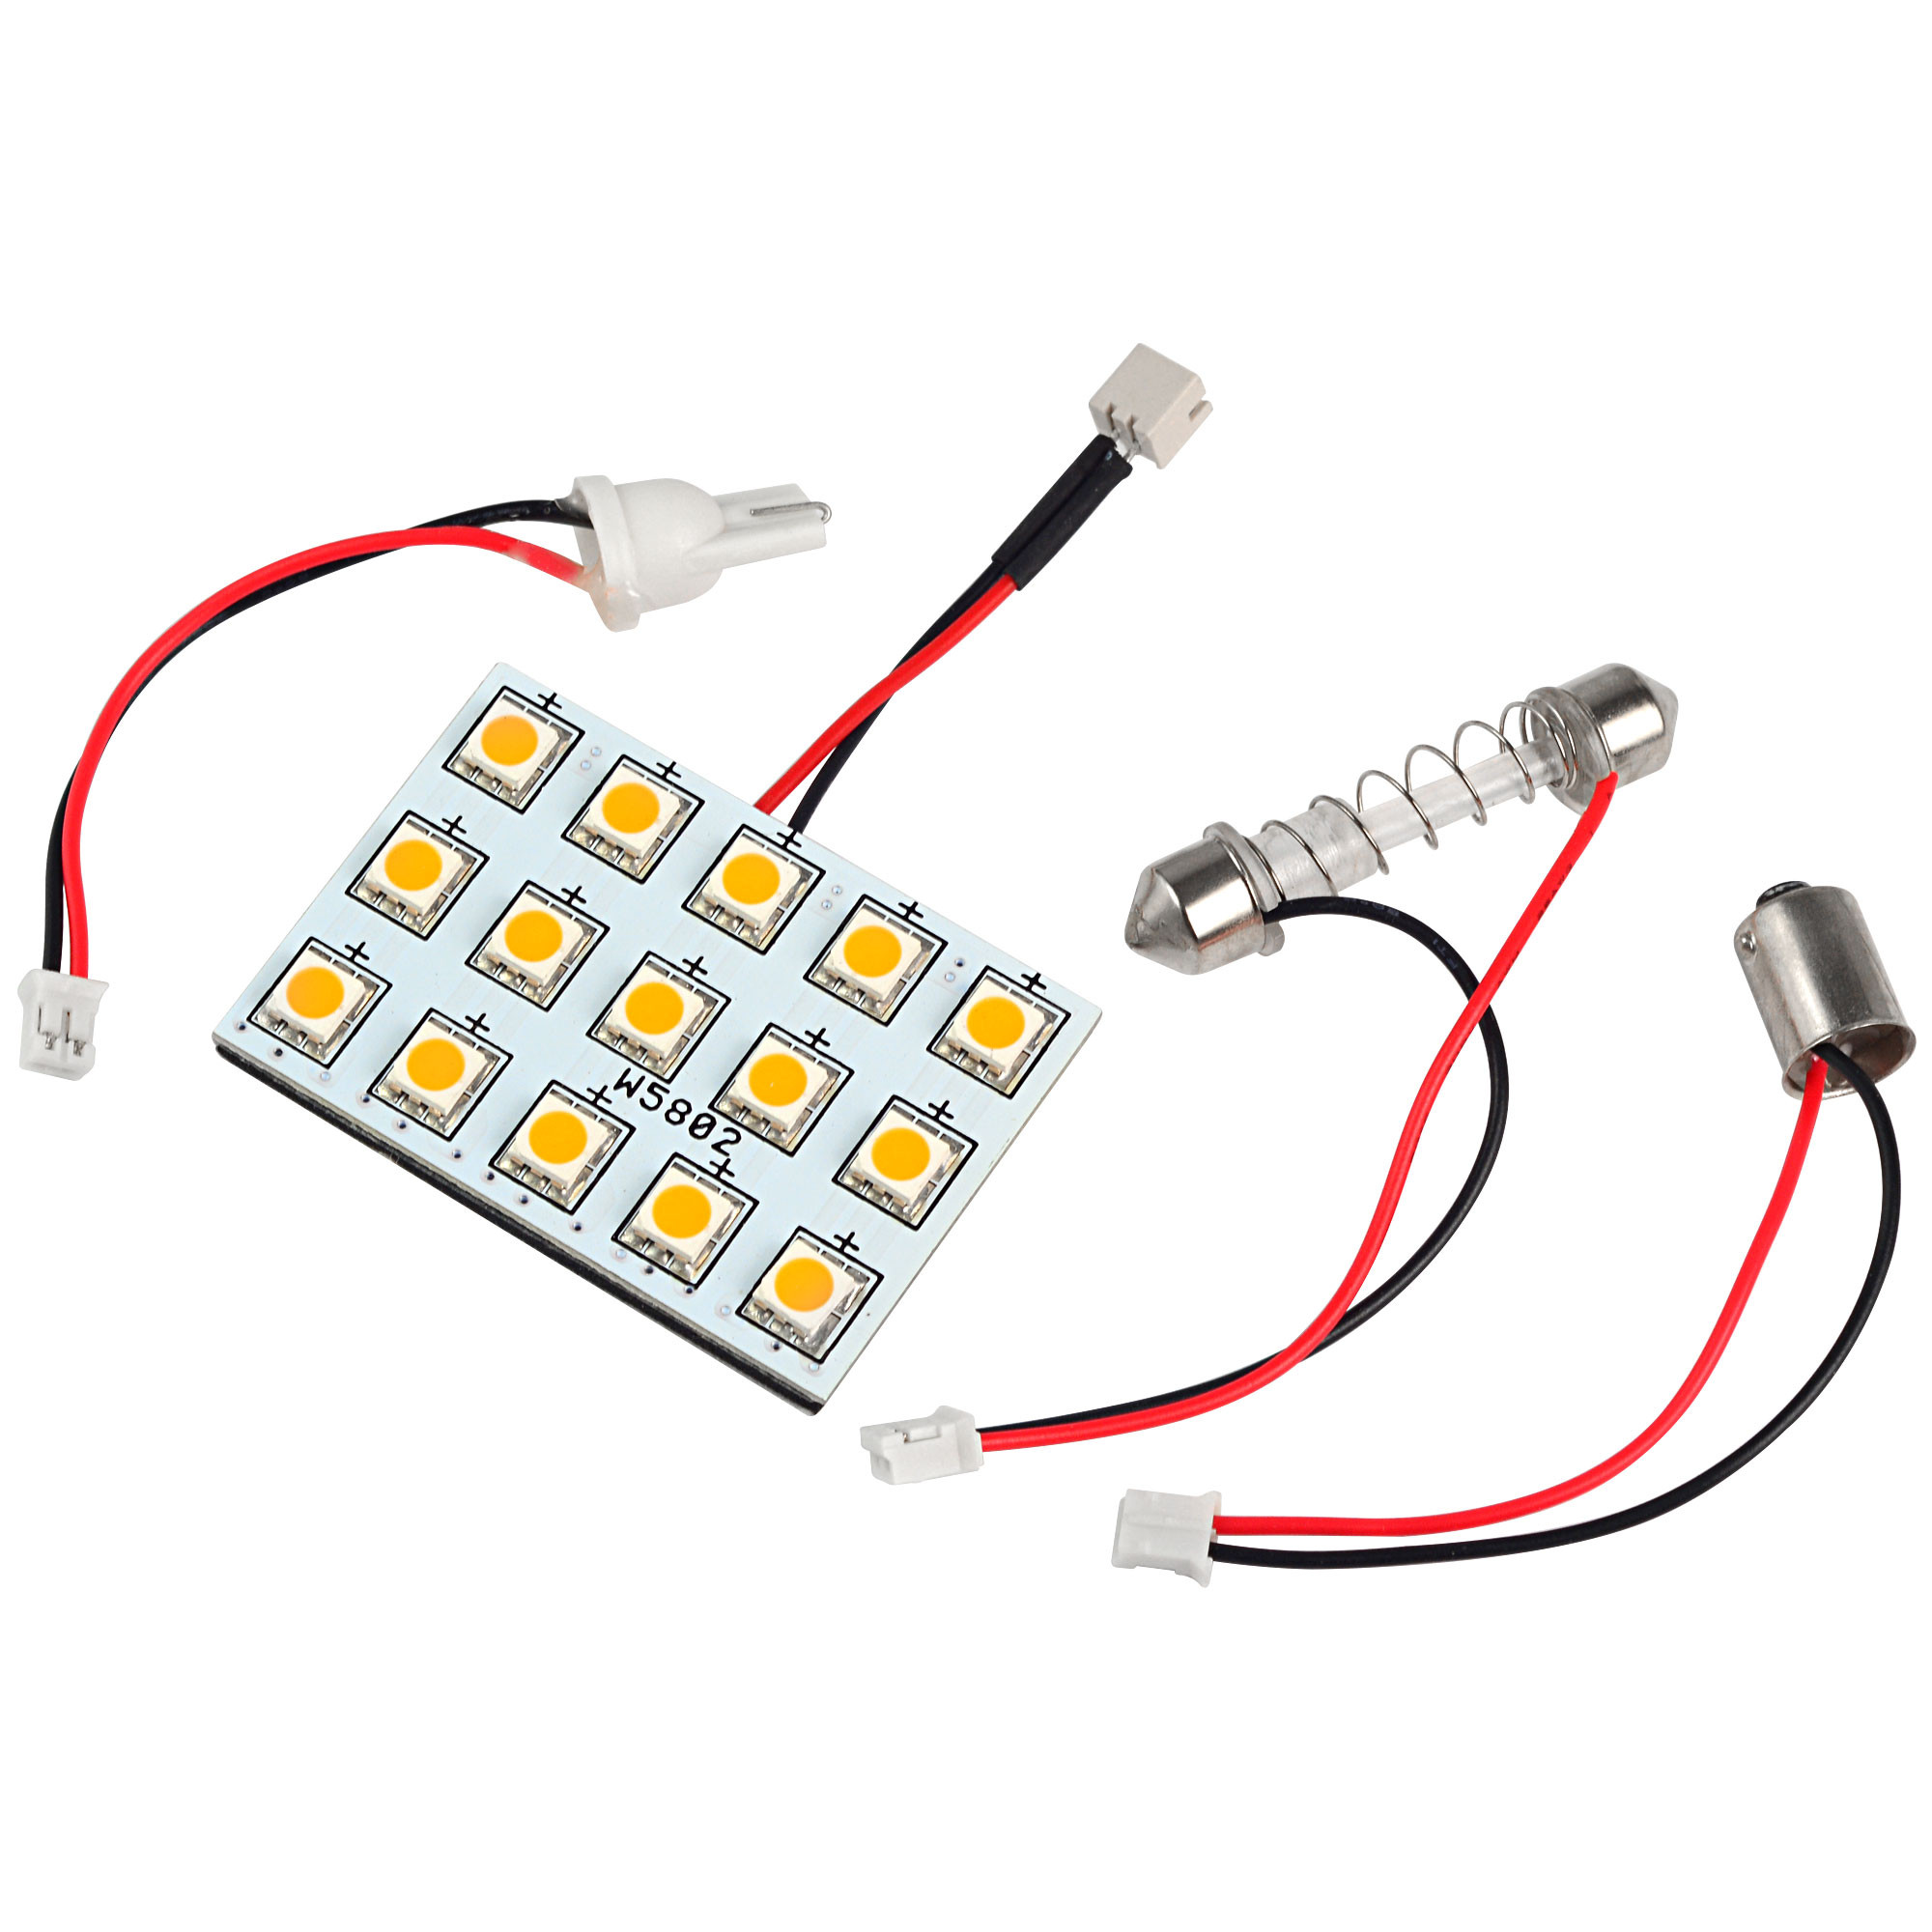 MENGS® T10 BA9S SV8.5 LED Car Light with 3 Adapters 15x 5050 SMD LED Bulb Lamp DC 12V In Warm White